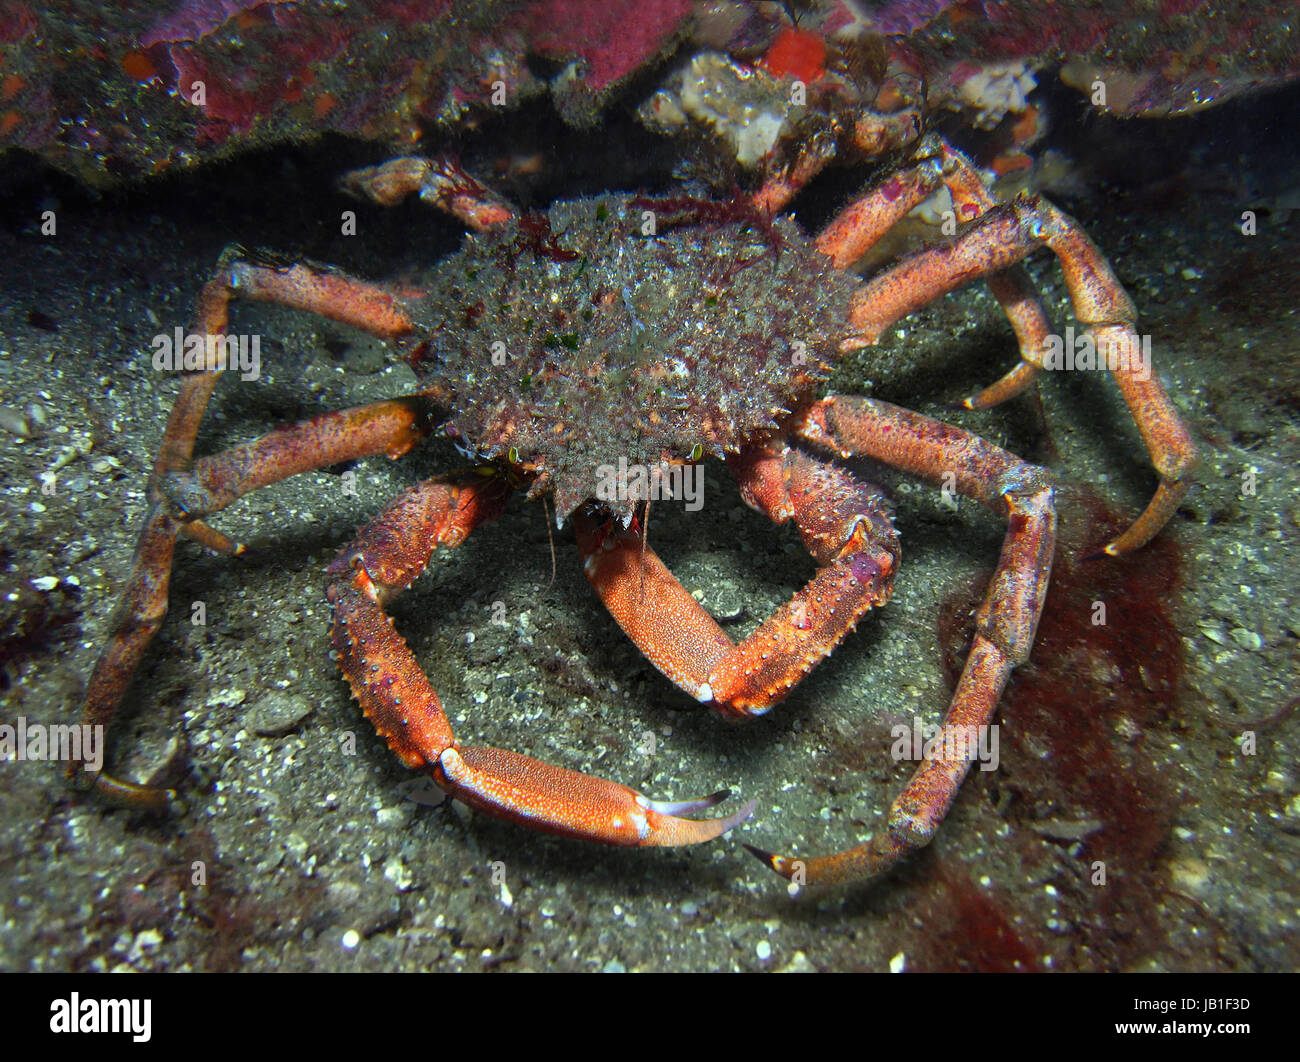 Spiny spider crab, Maja squinado. It is a seafood with great commercial value. Portugal - Stock Image